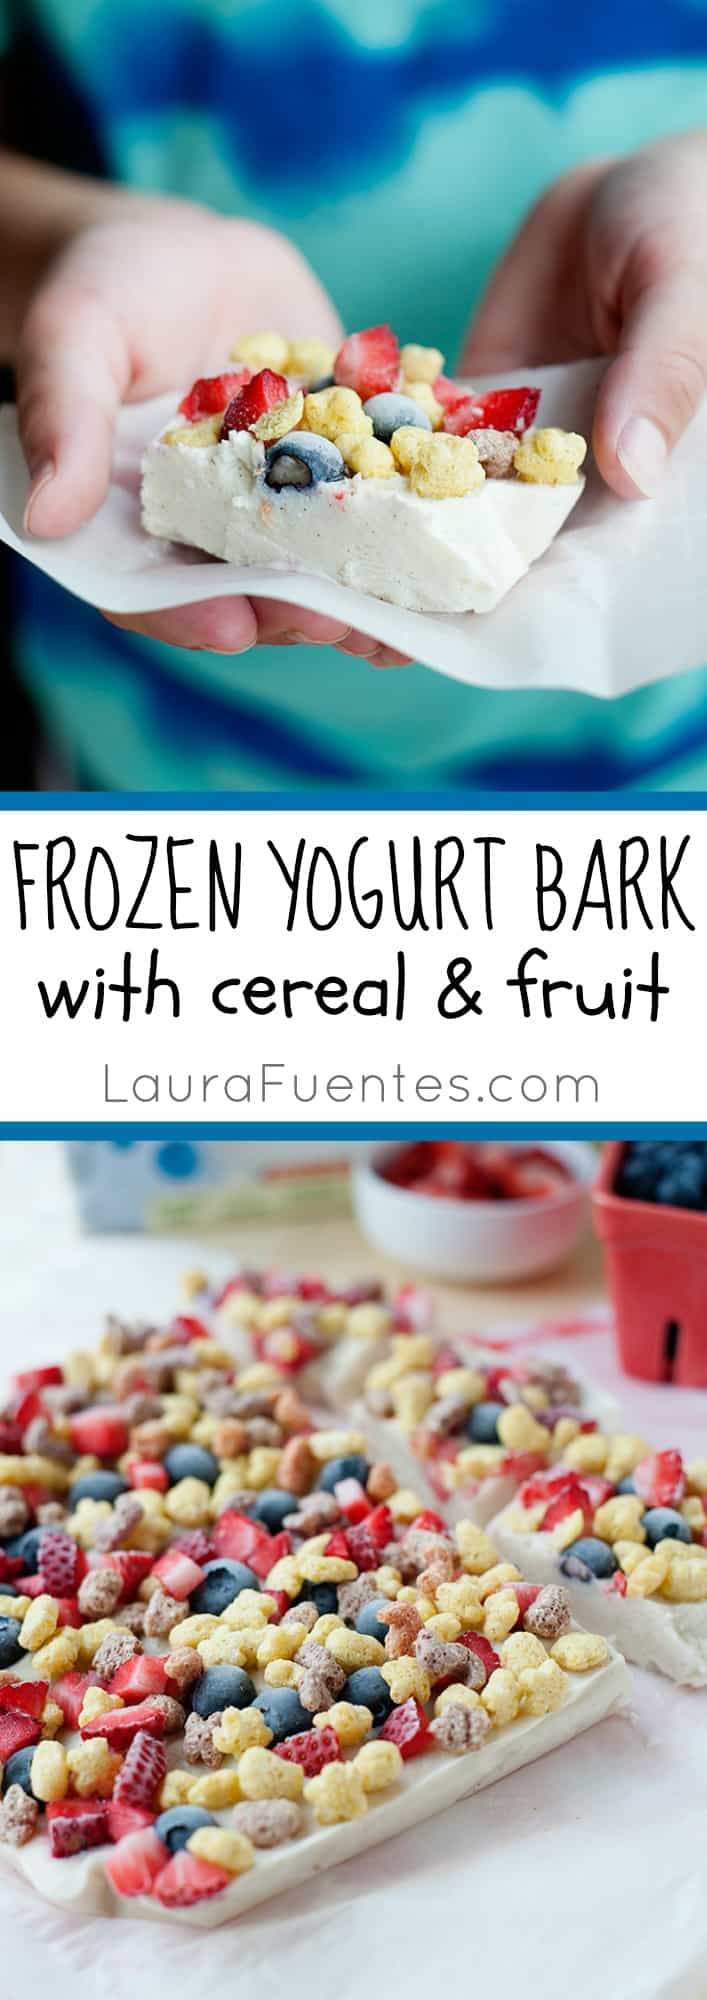 Frozen Yogurt Bark with Cereal and Fruit: the perfect cool snack on a hot day and after school! Quick and easy to make, and it's great to keep in the freezer.